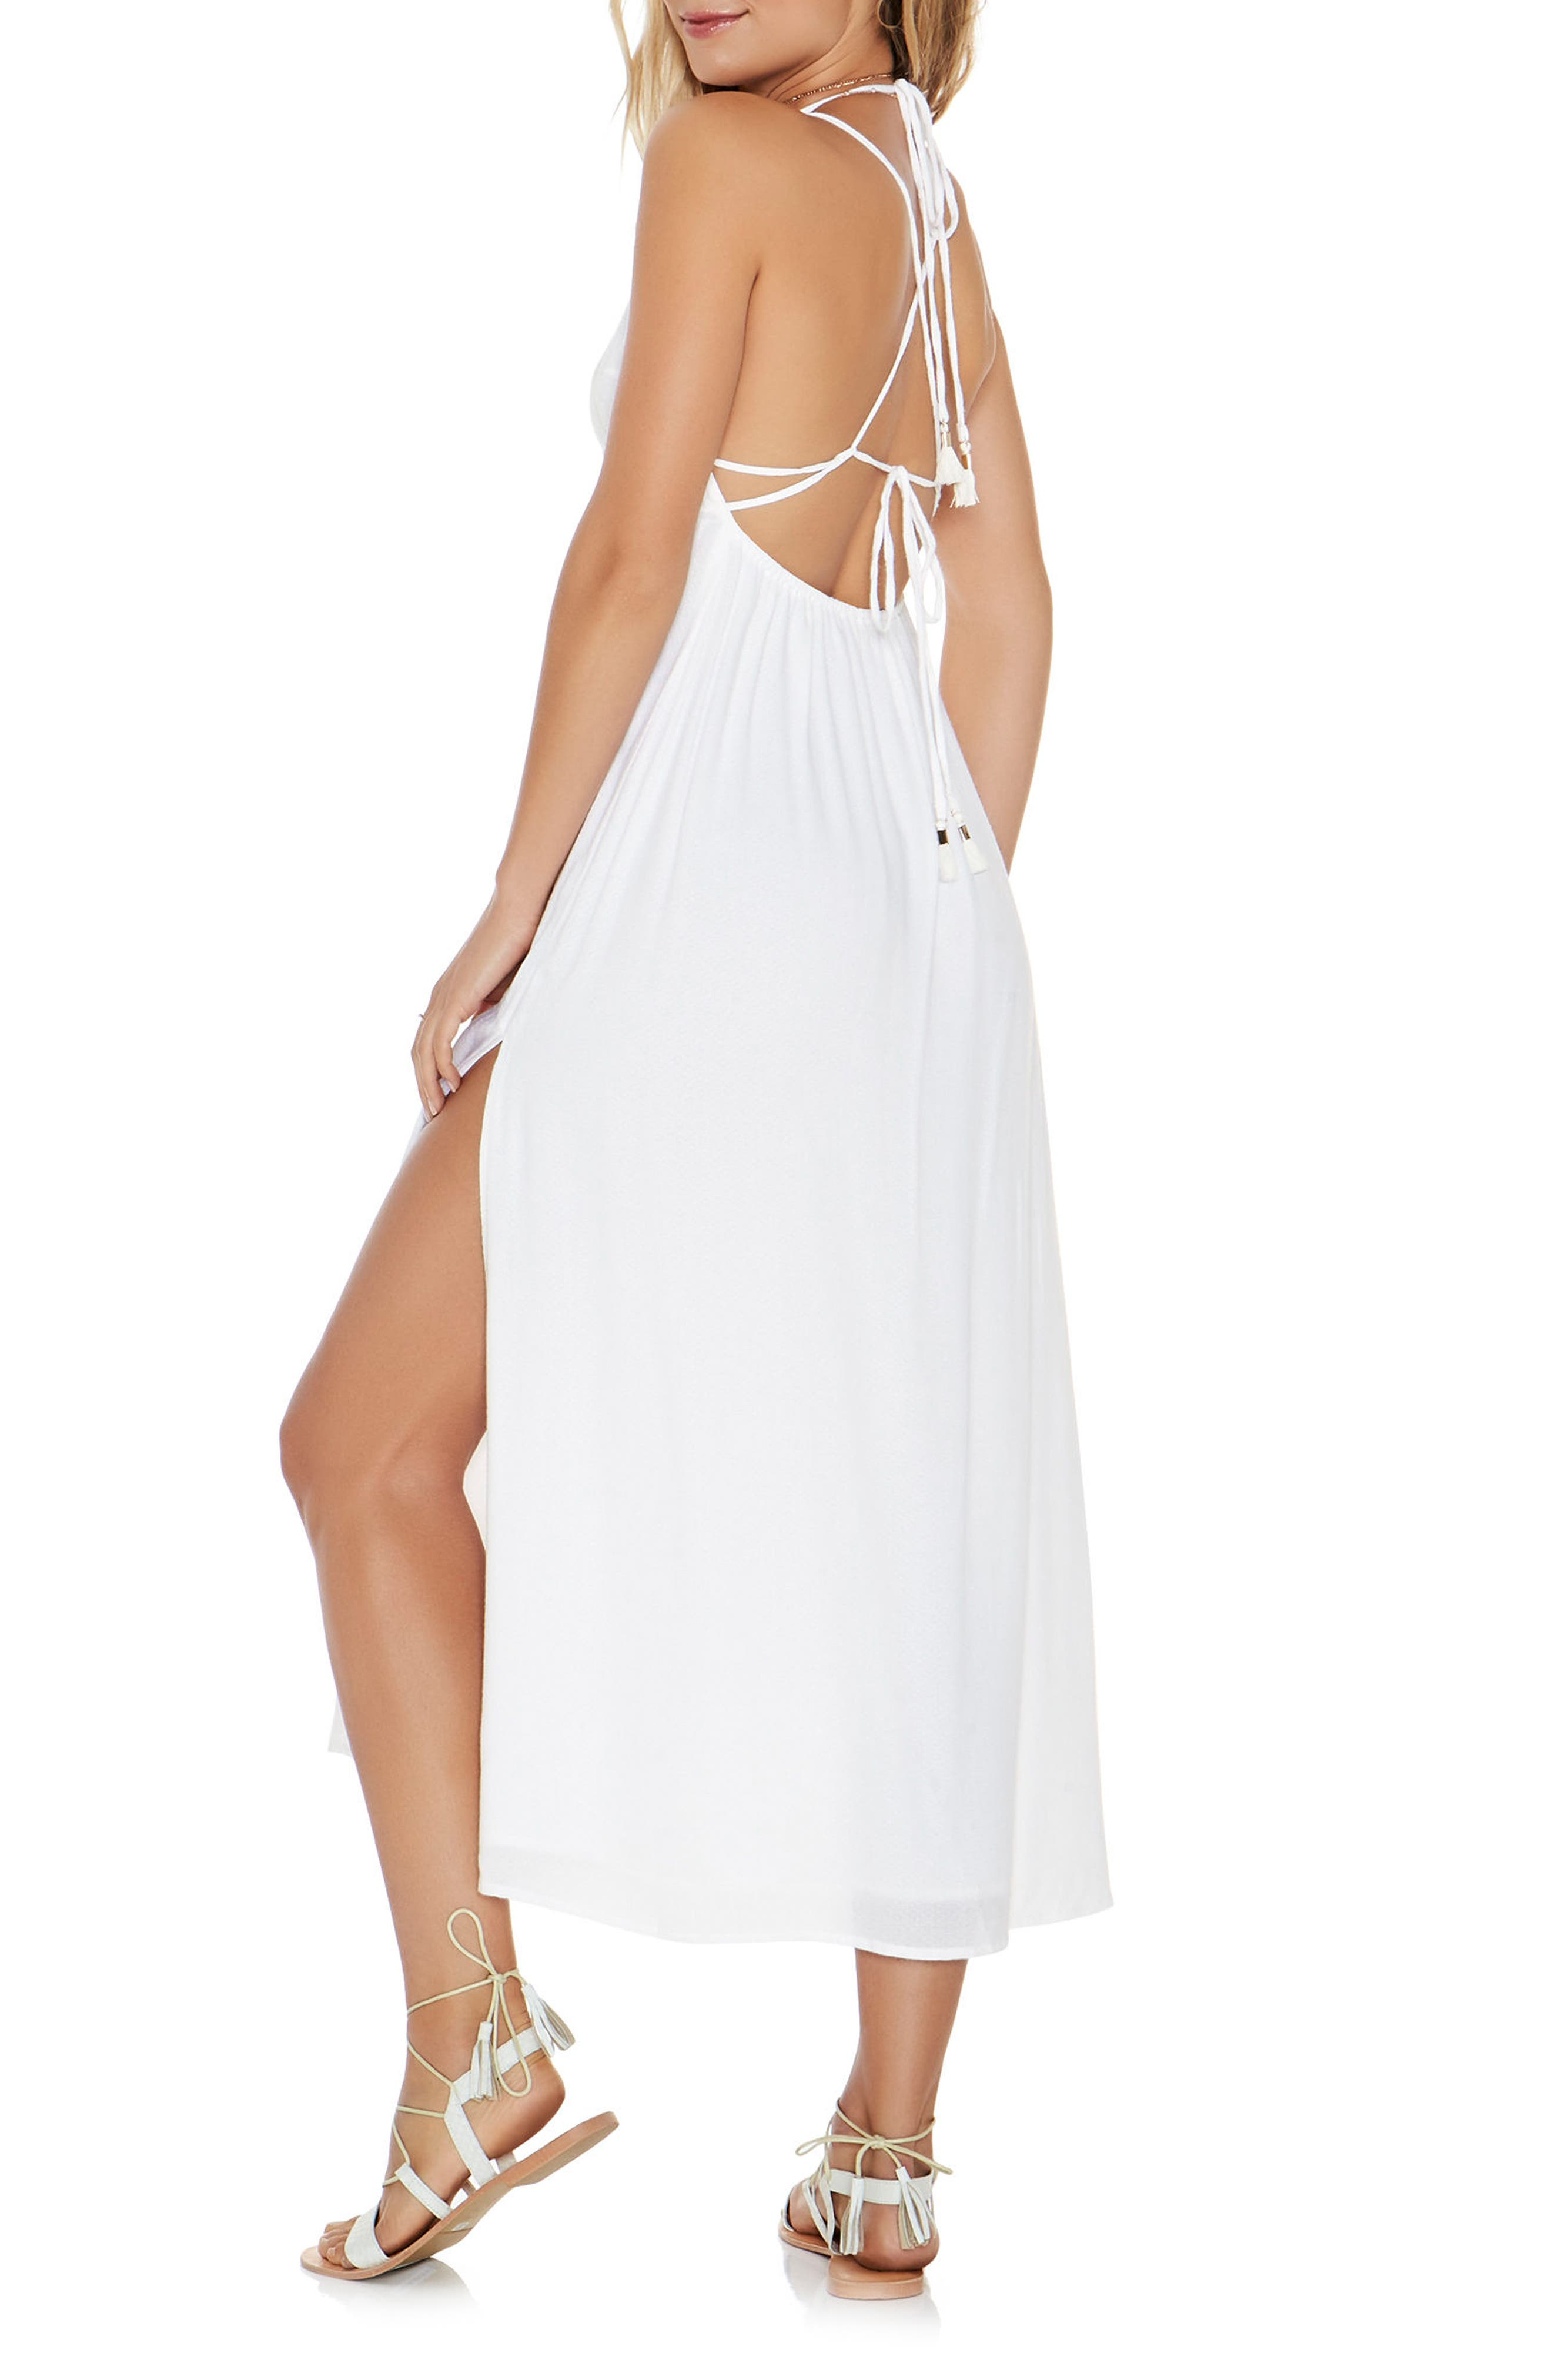 Beachside Beauty Cover-Up Dress,                             Alternate thumbnail 3, color,                             100